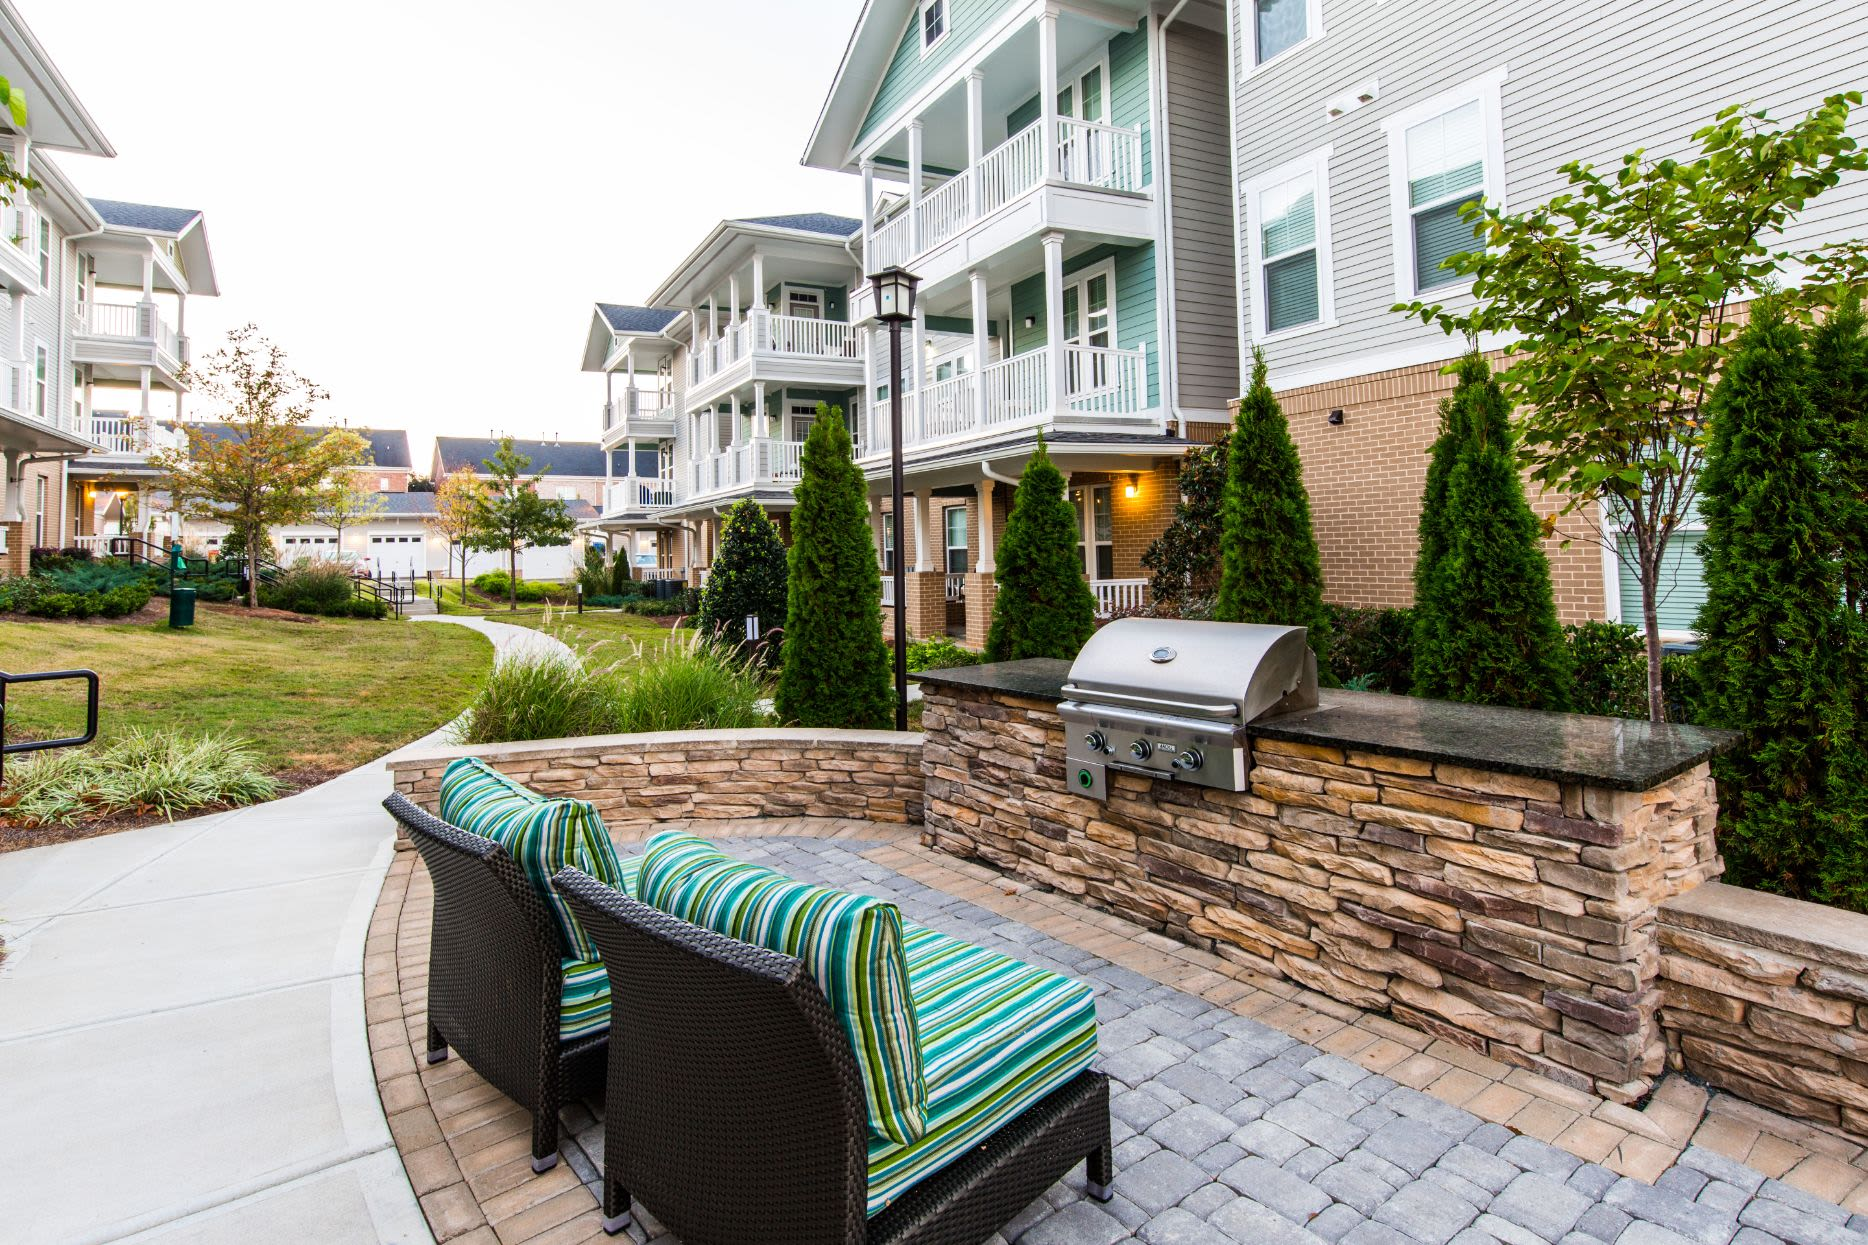 Outdoor grill for residents at Marquis at Morrison Plantation in Mooresville, North Carolina